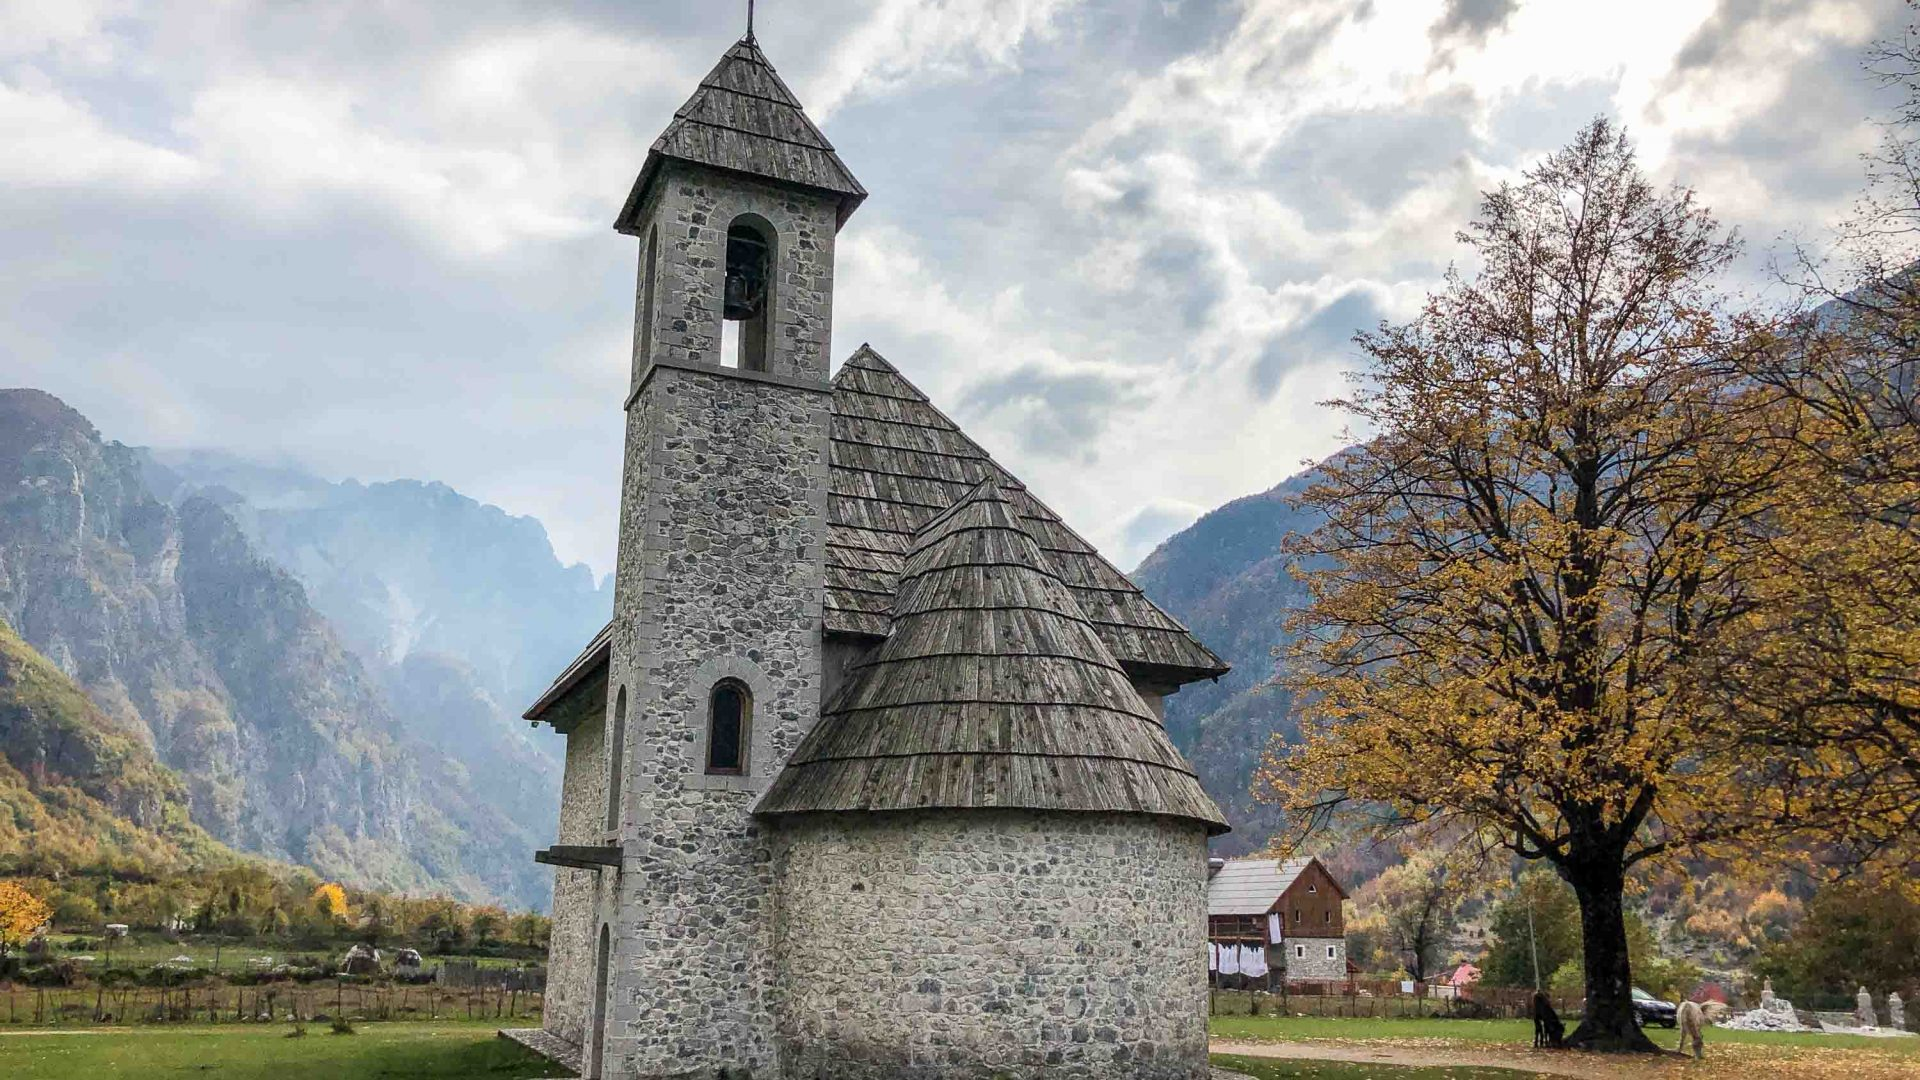 The striking design of the church in Theth, Albania, one of the village's major landmarks.